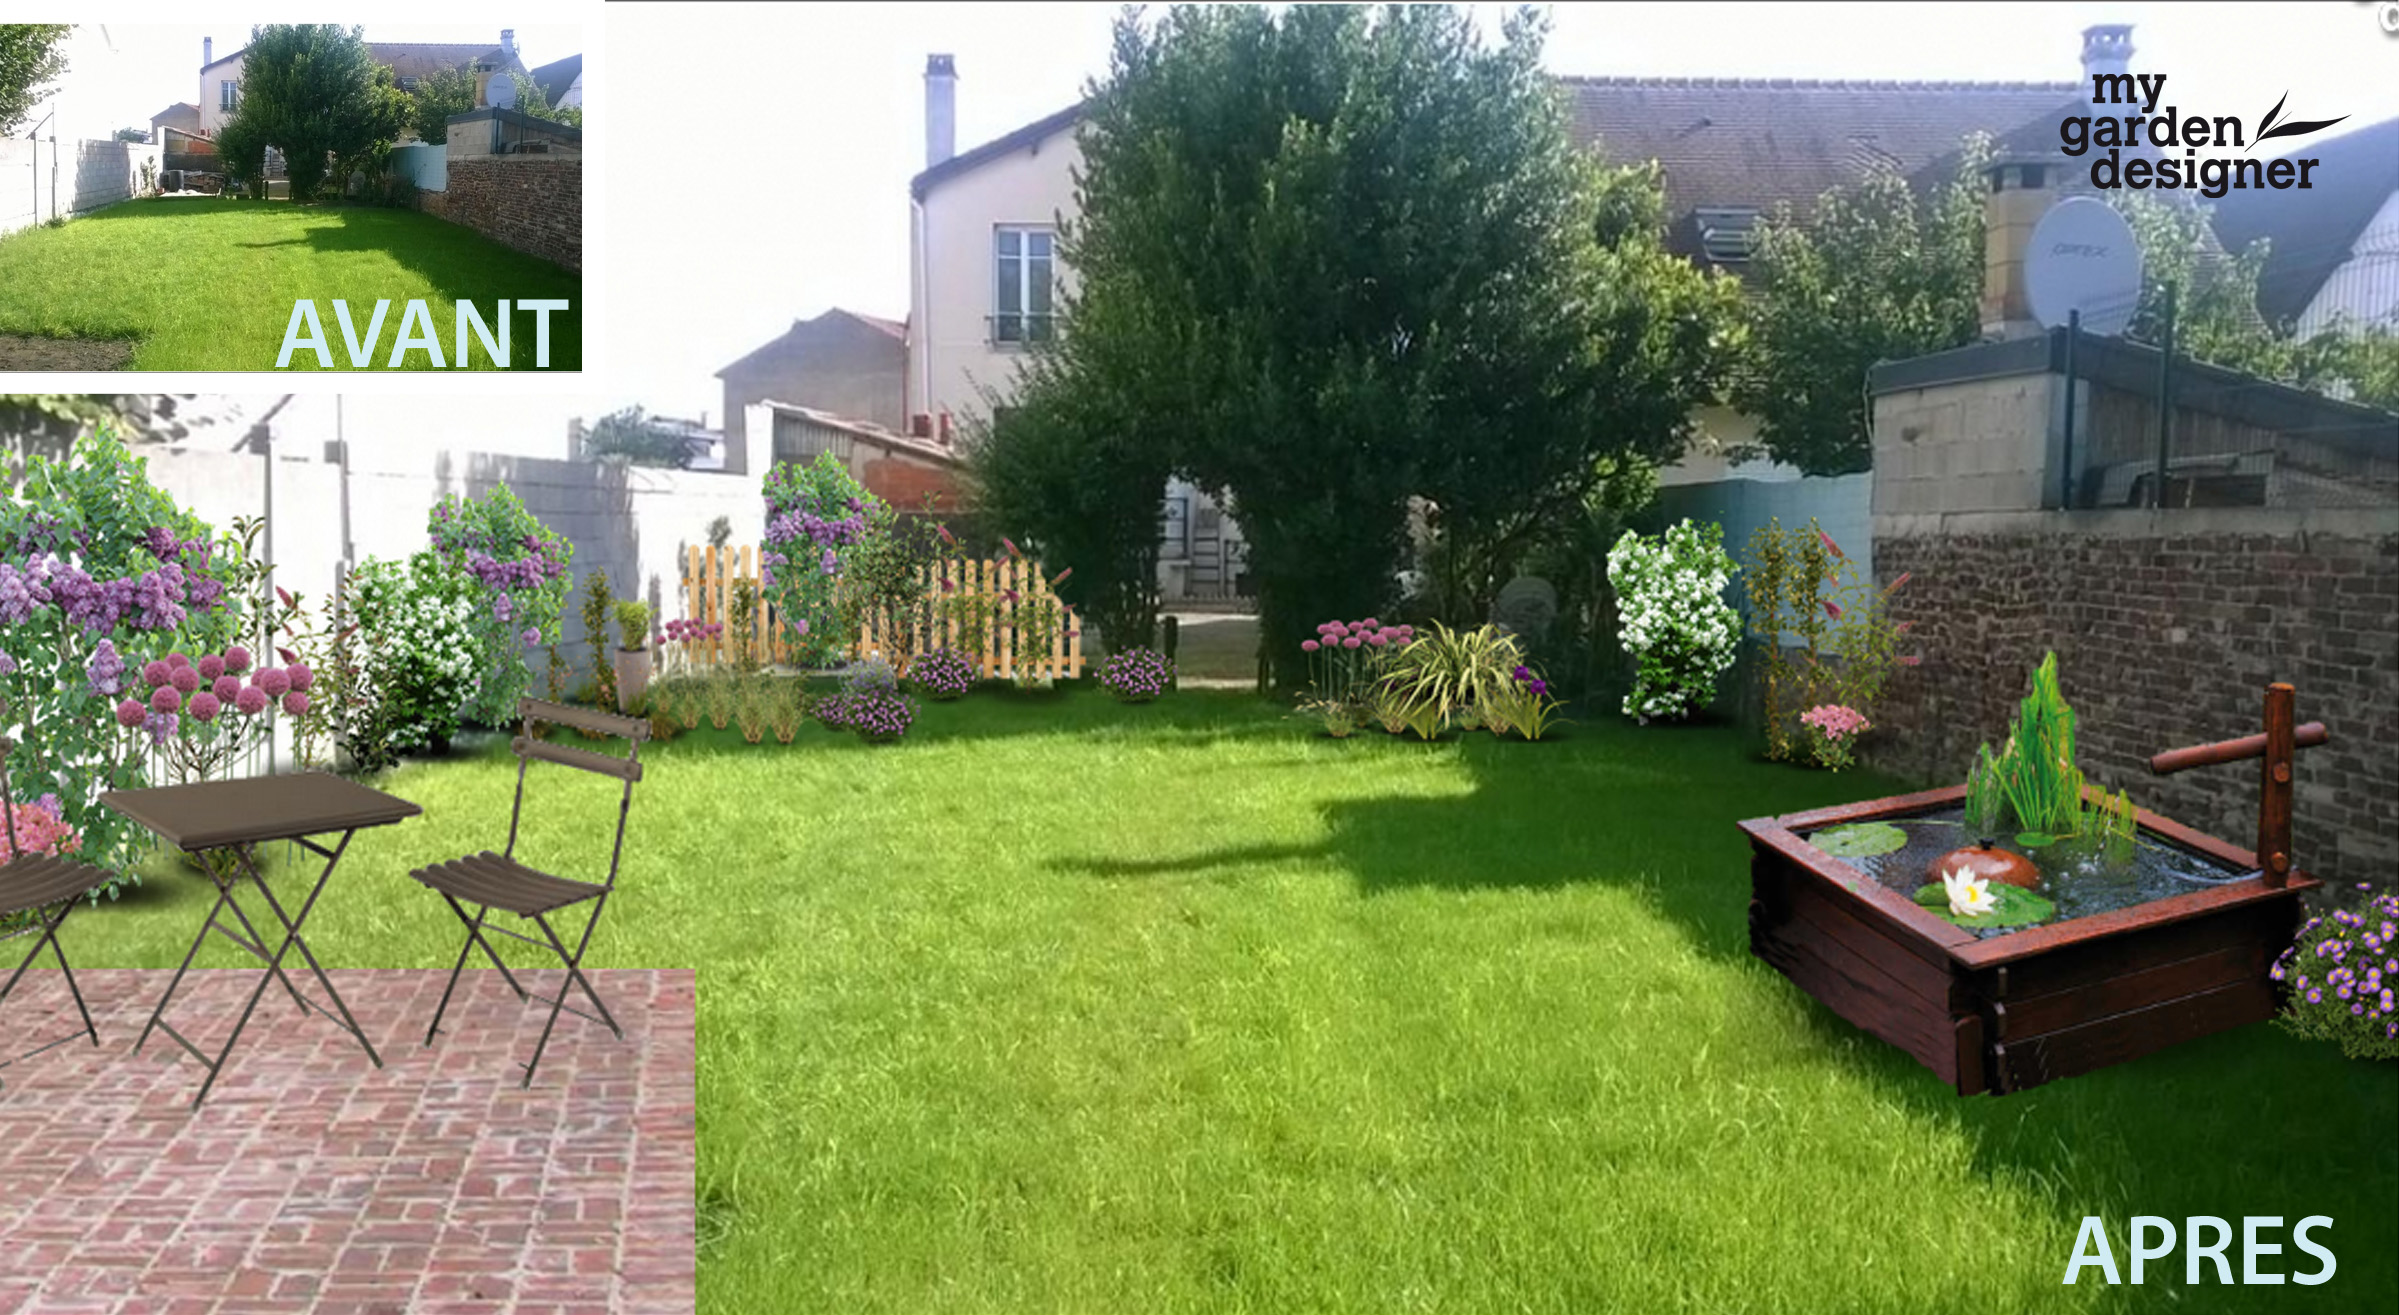 Am nager un jardin carr en ile de france monjardin for Jardin france